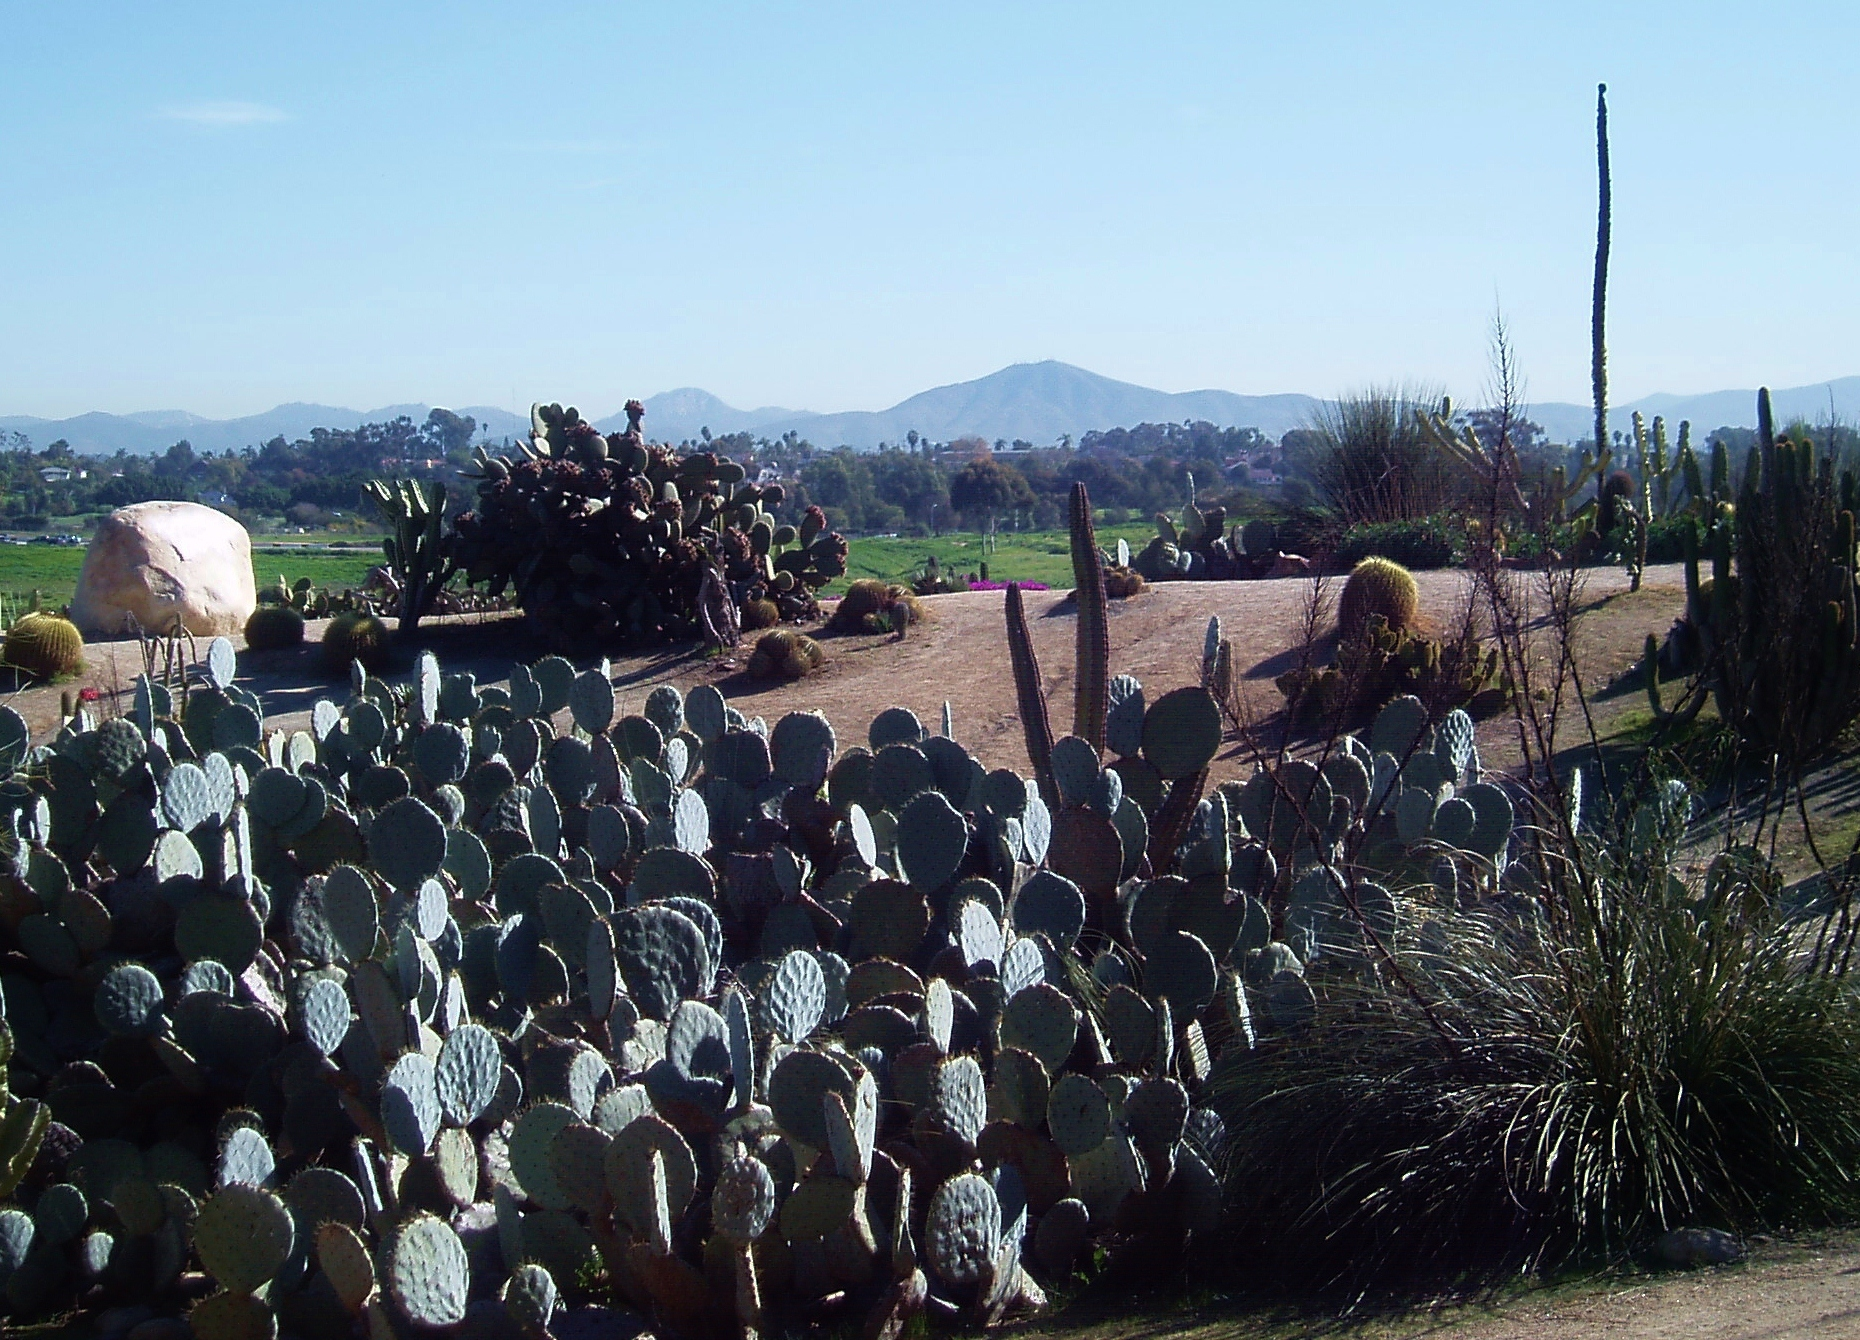 A view of the back country foothills through the cactus garden in Balboa Park.